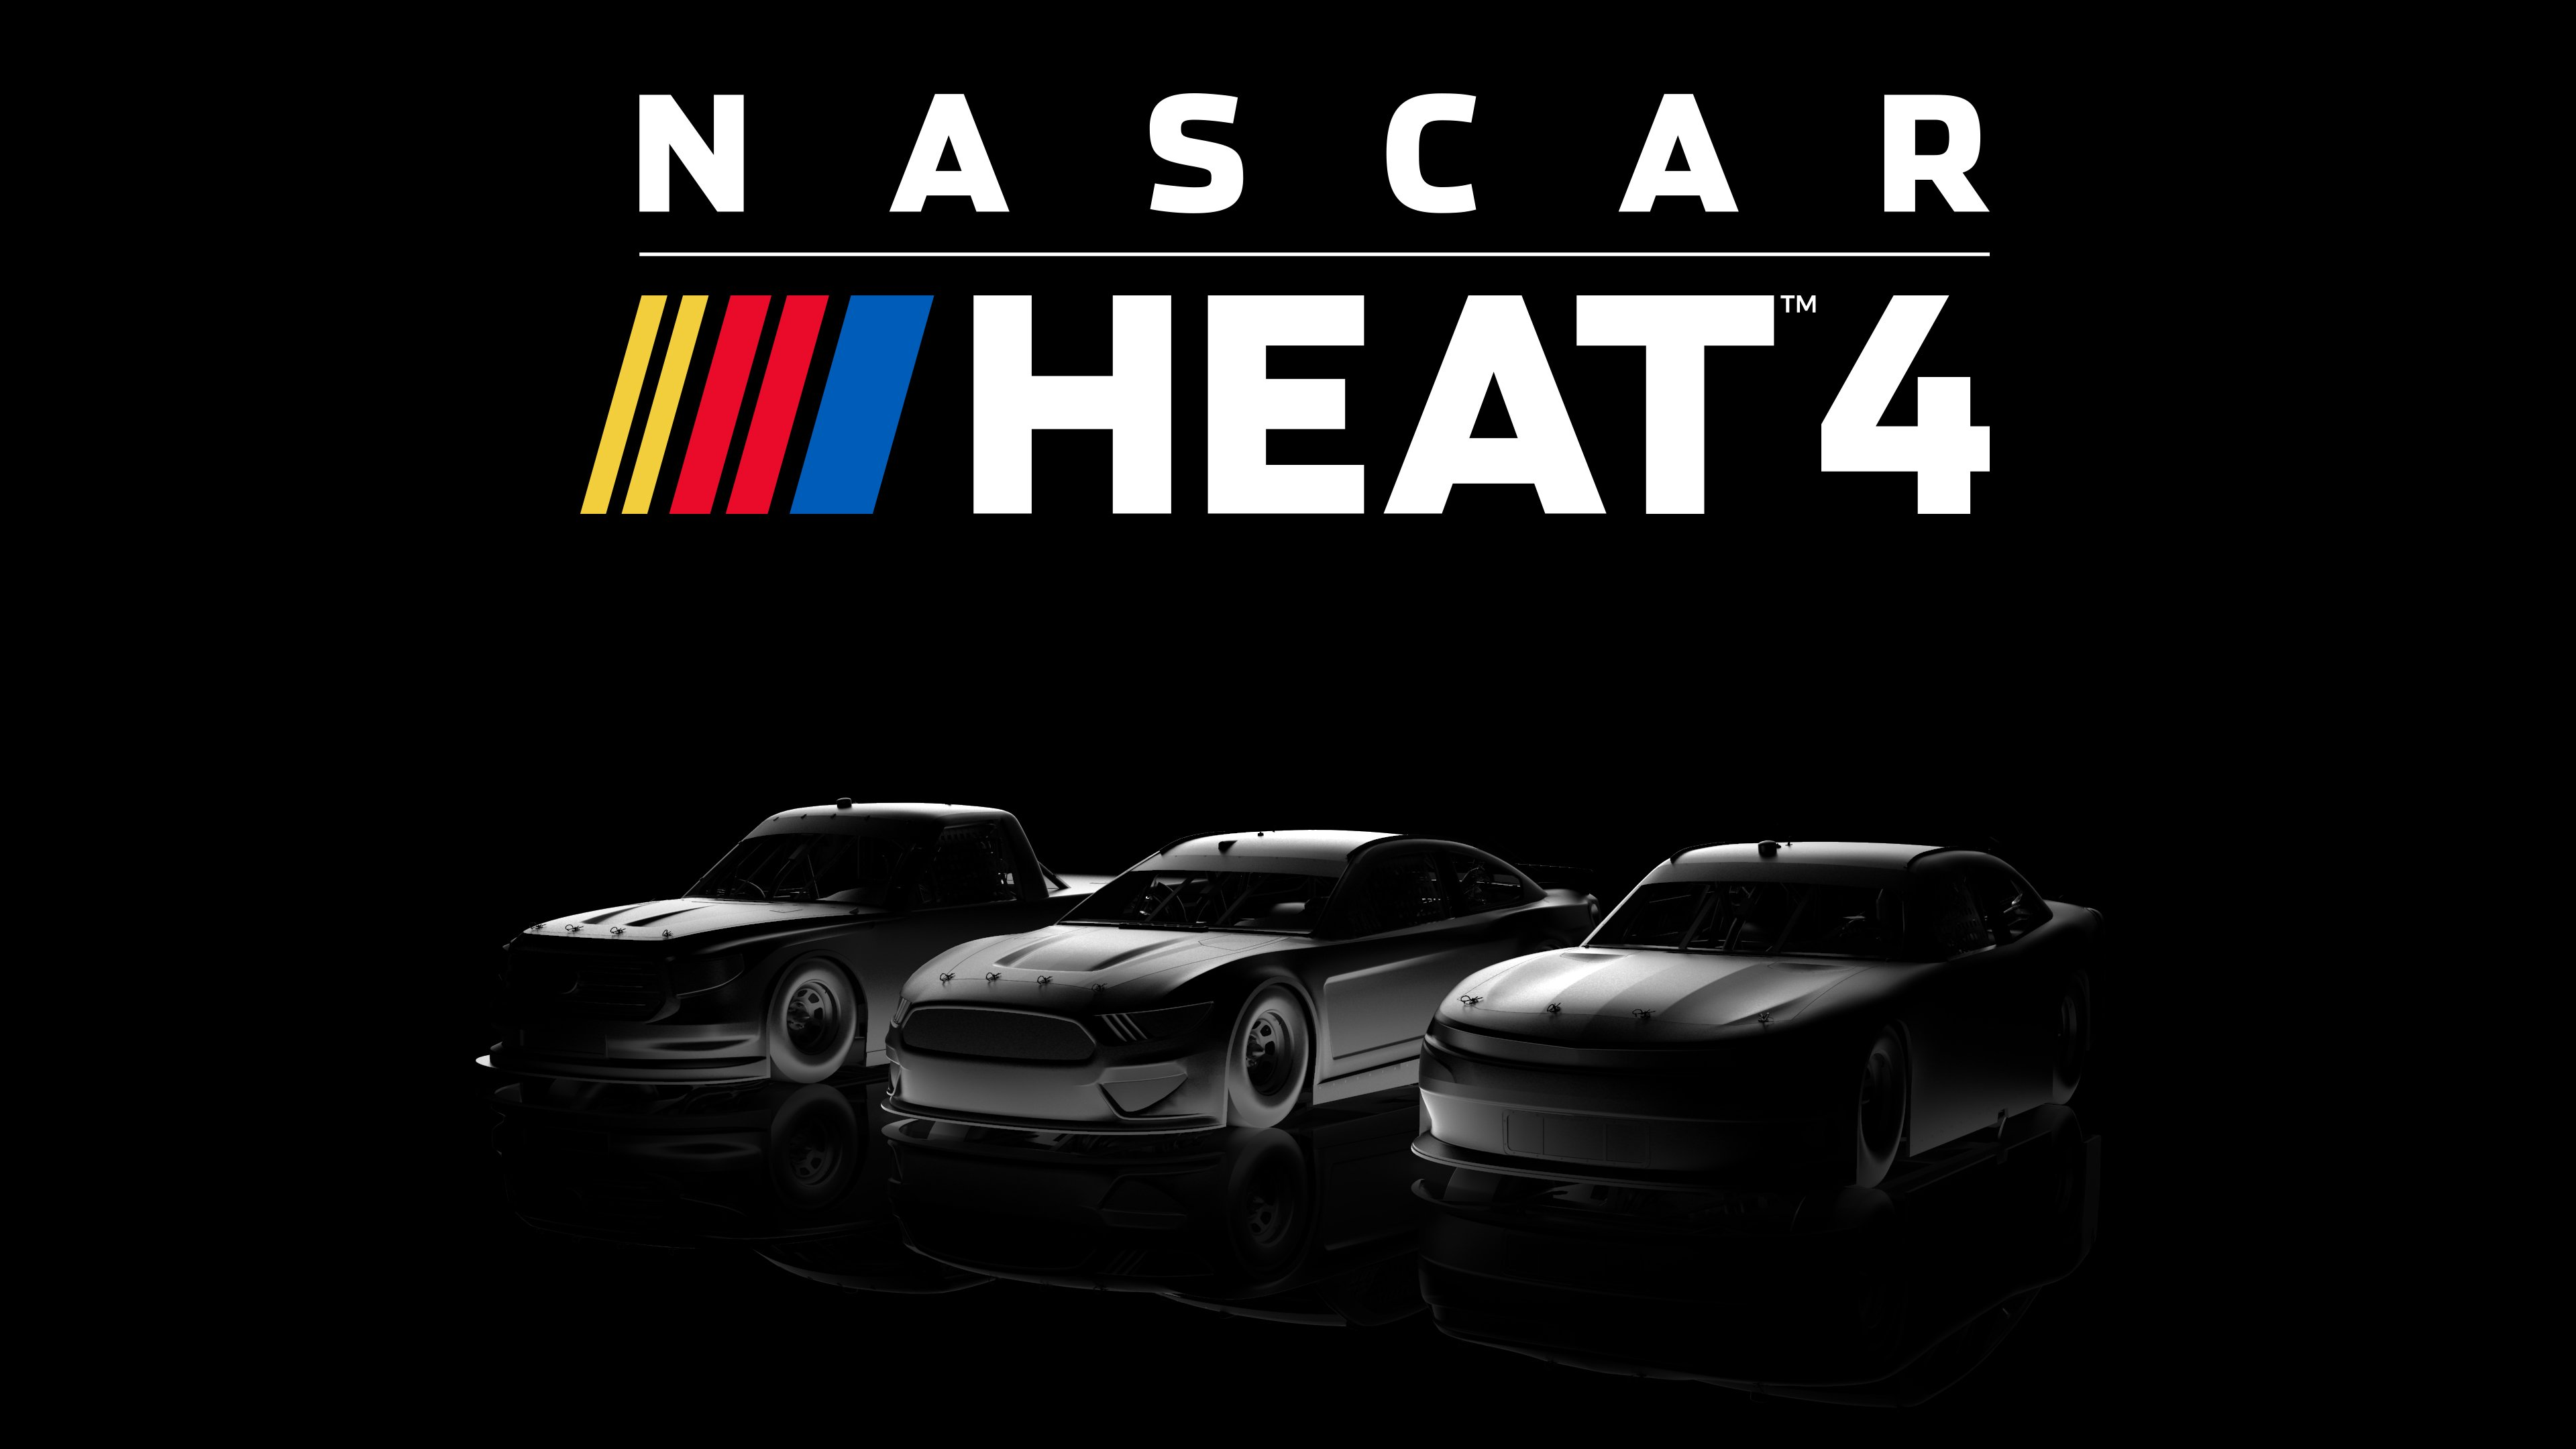 NASCAR Heat 4 wallpaper based off the roster announcement image 3840x2160